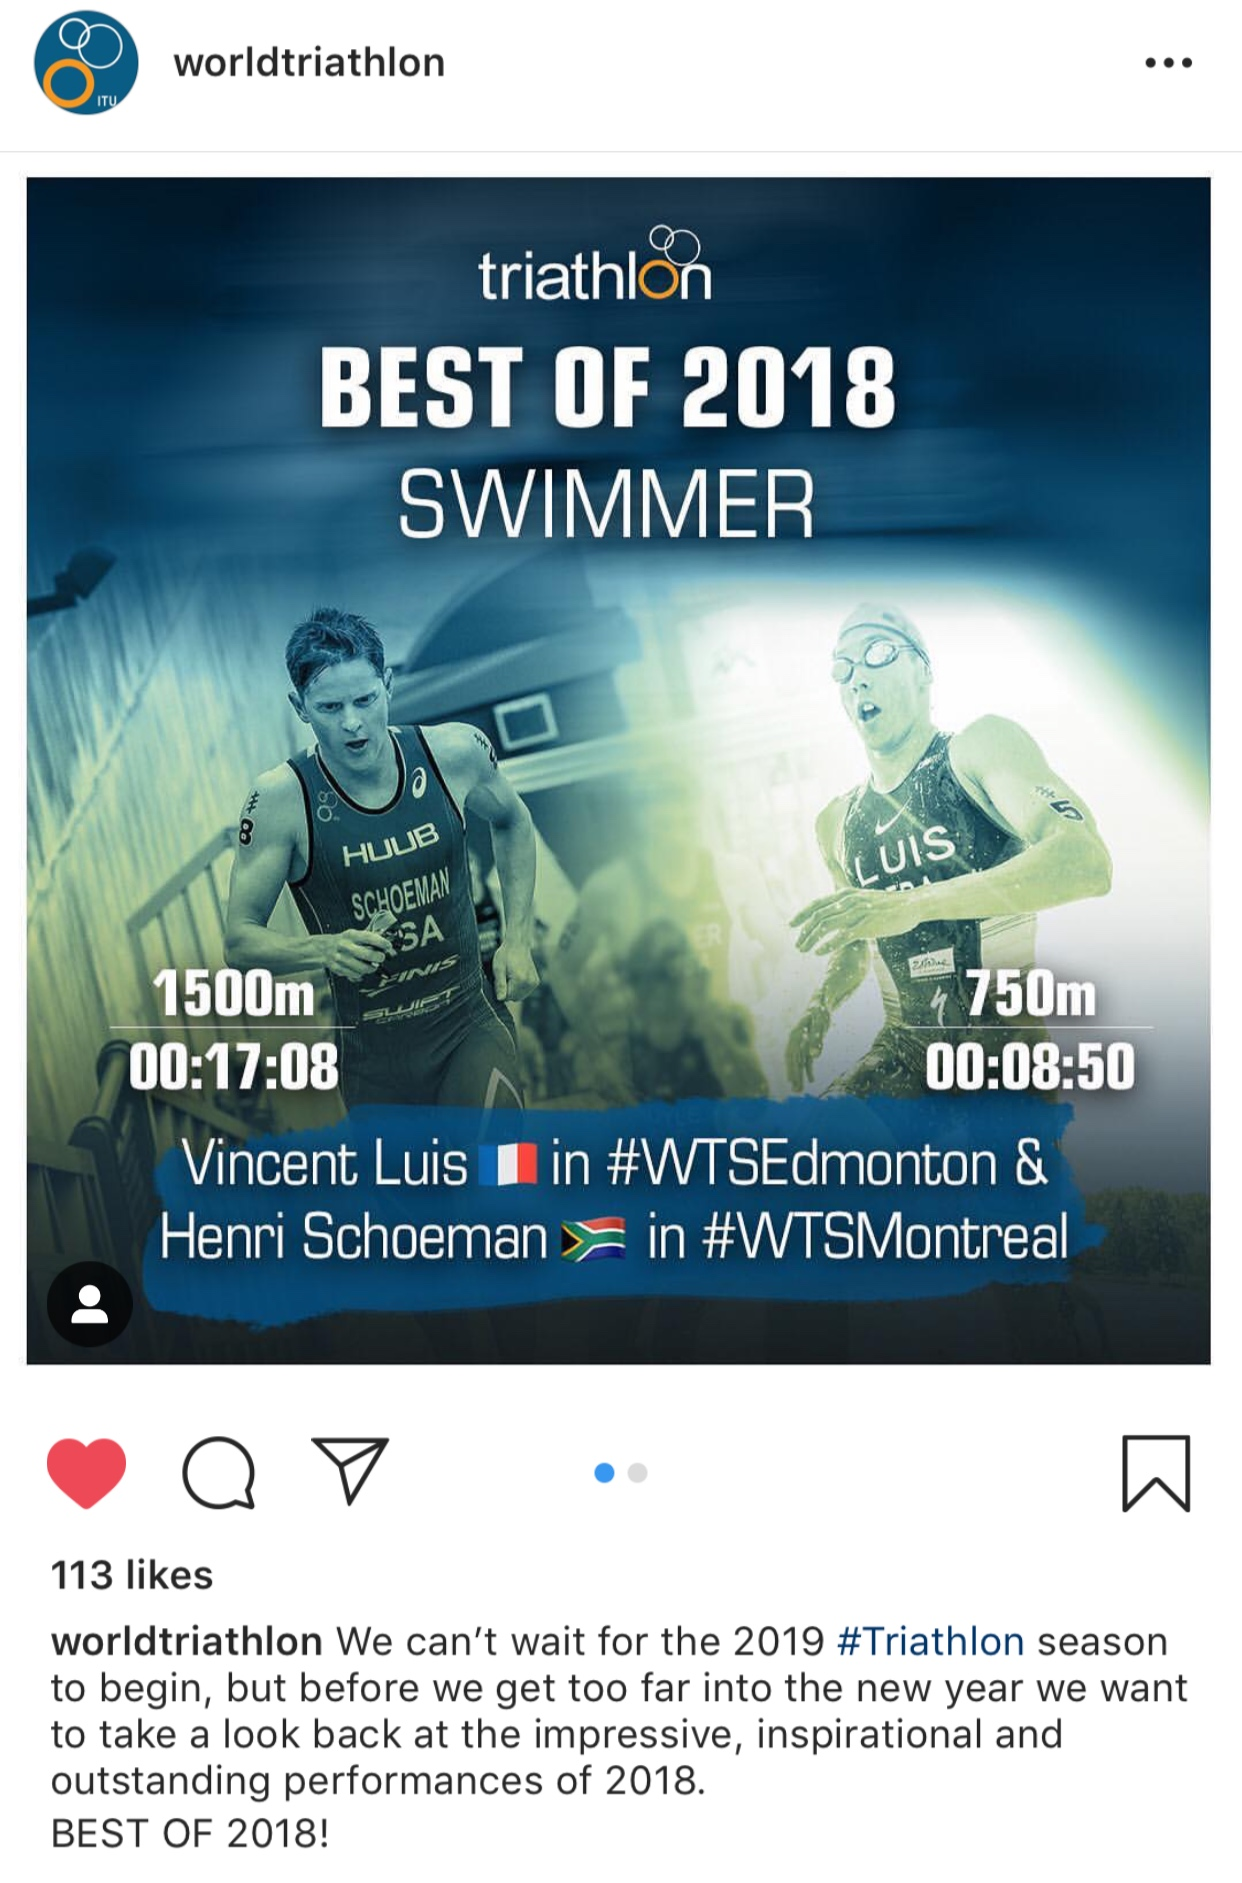 vincentluis_swimming2018.png